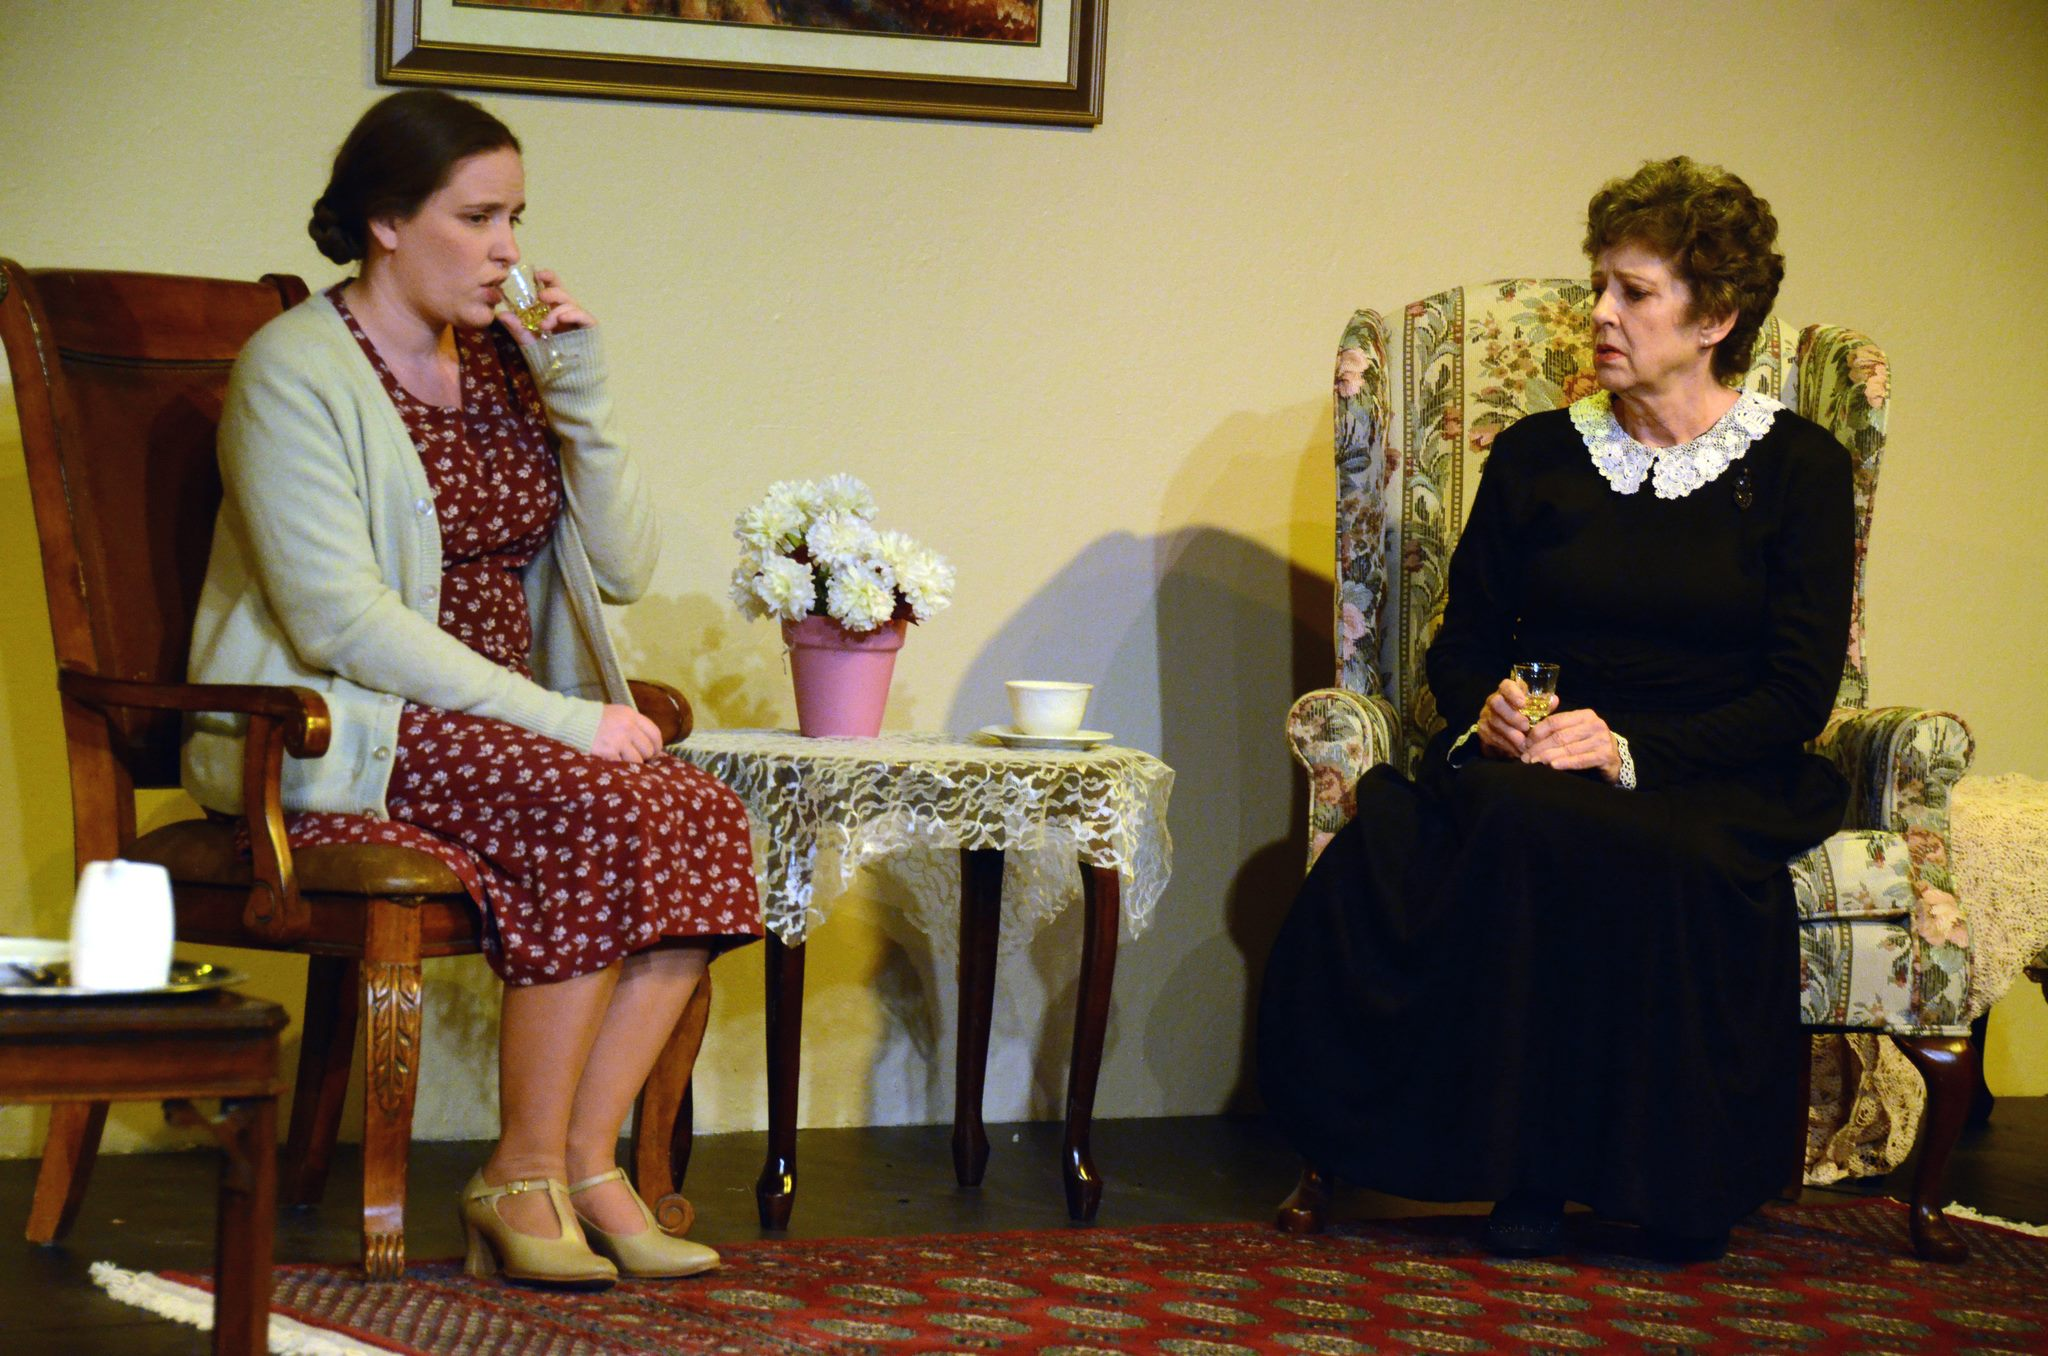 "Amanda Noel Trombley and Barbara Acker in ""Mrs. Klein"" at Theatre Artists Studio, 2013. (Photo by Mark Gluckman)"